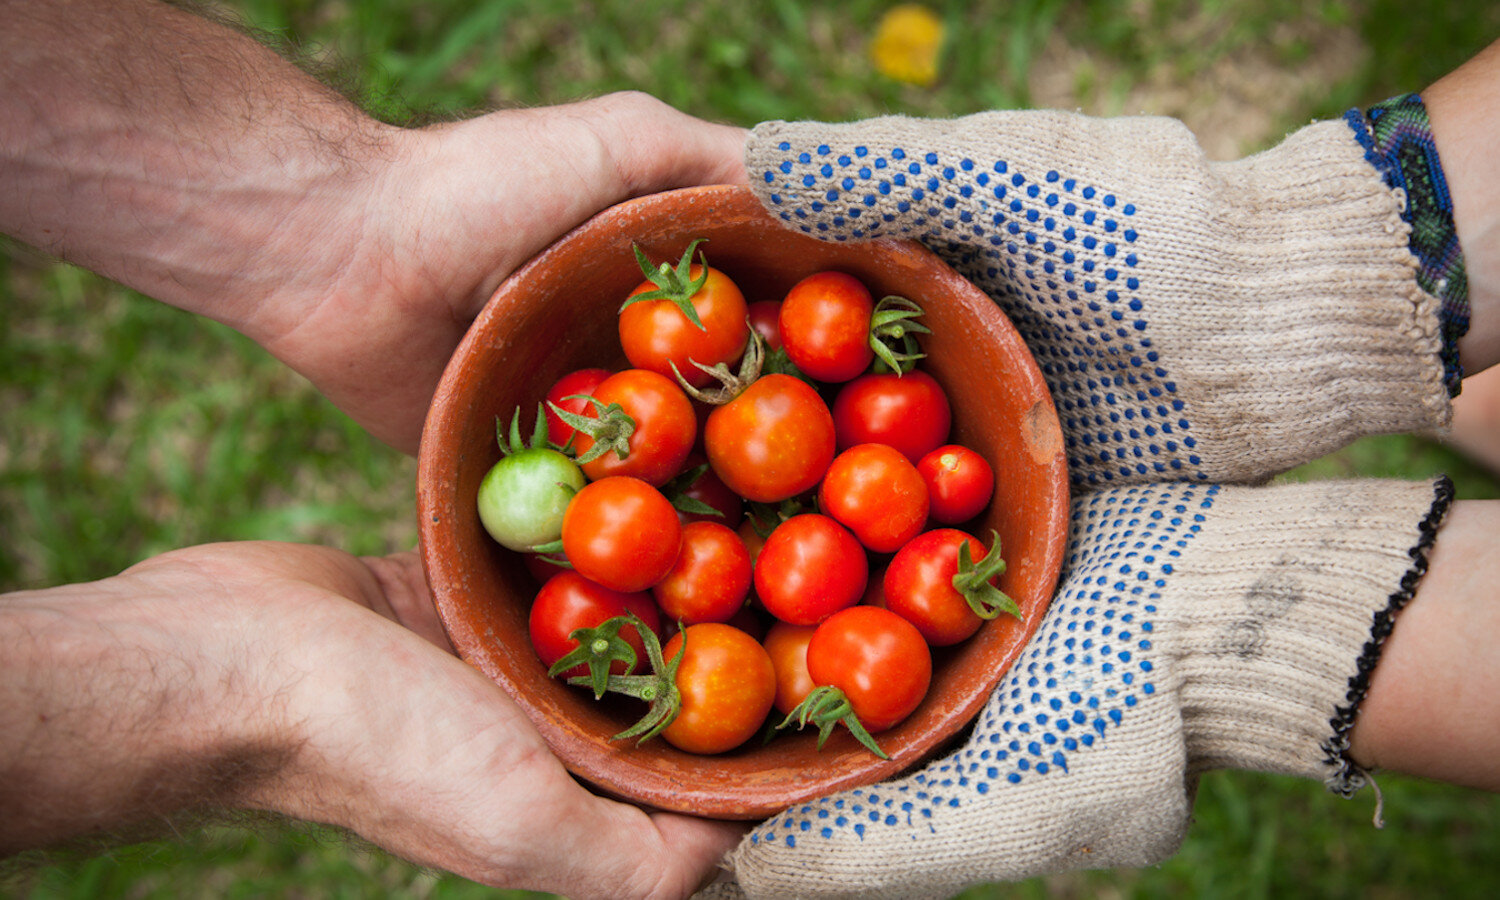 Two sets of hands holding a bowl of cherry tomatoes